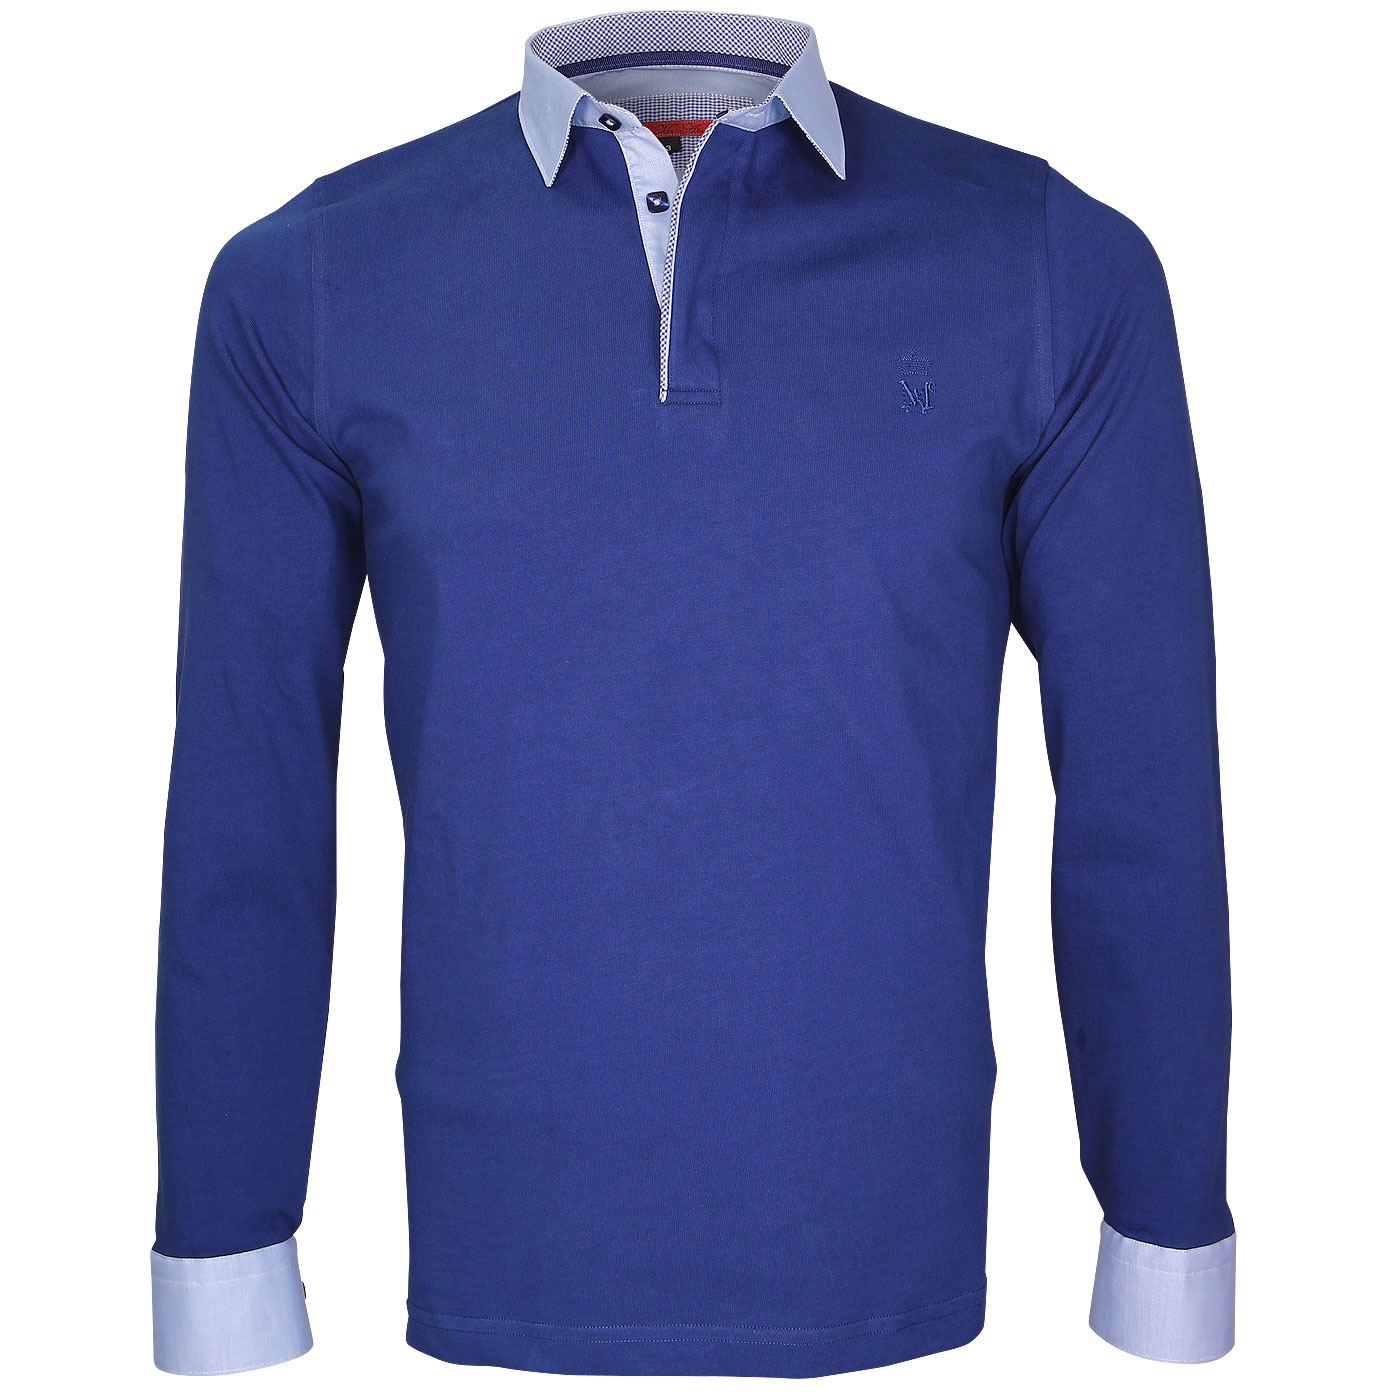 Long Sleeve Polo shirt more 300 models on Webmenshirts